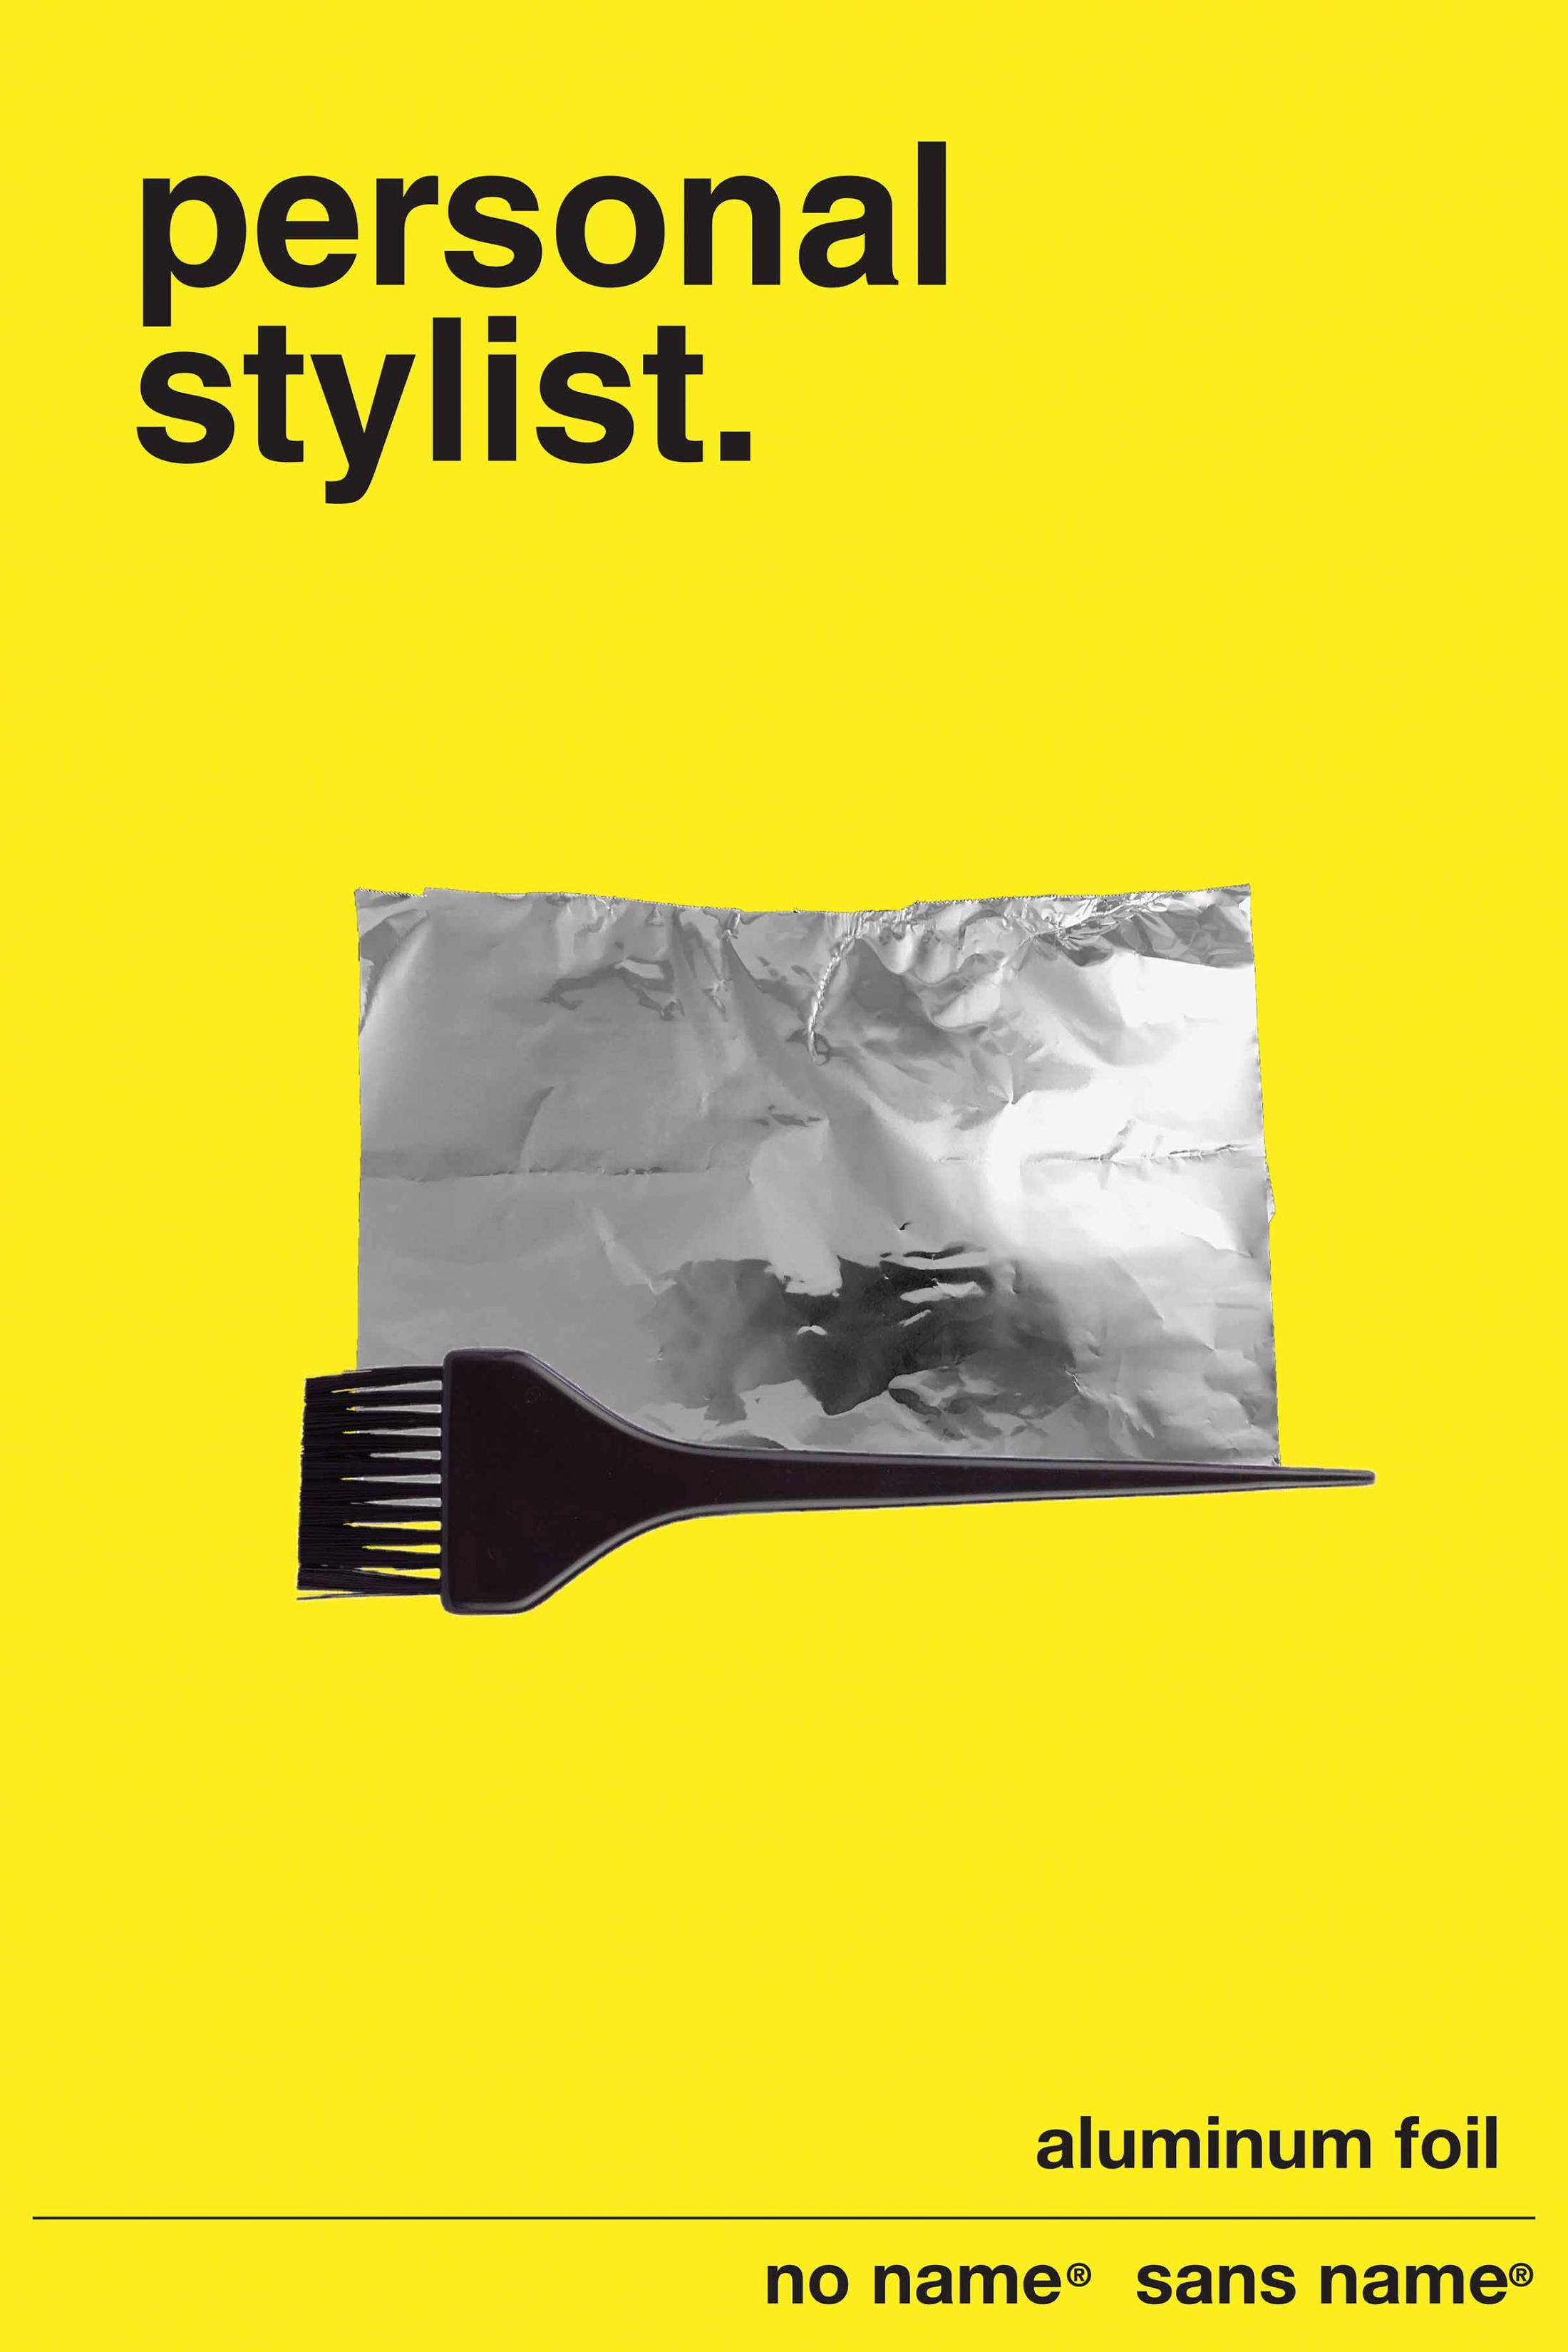 No Name Aluminum Foil Print Ad - Uses - Personal Stylist